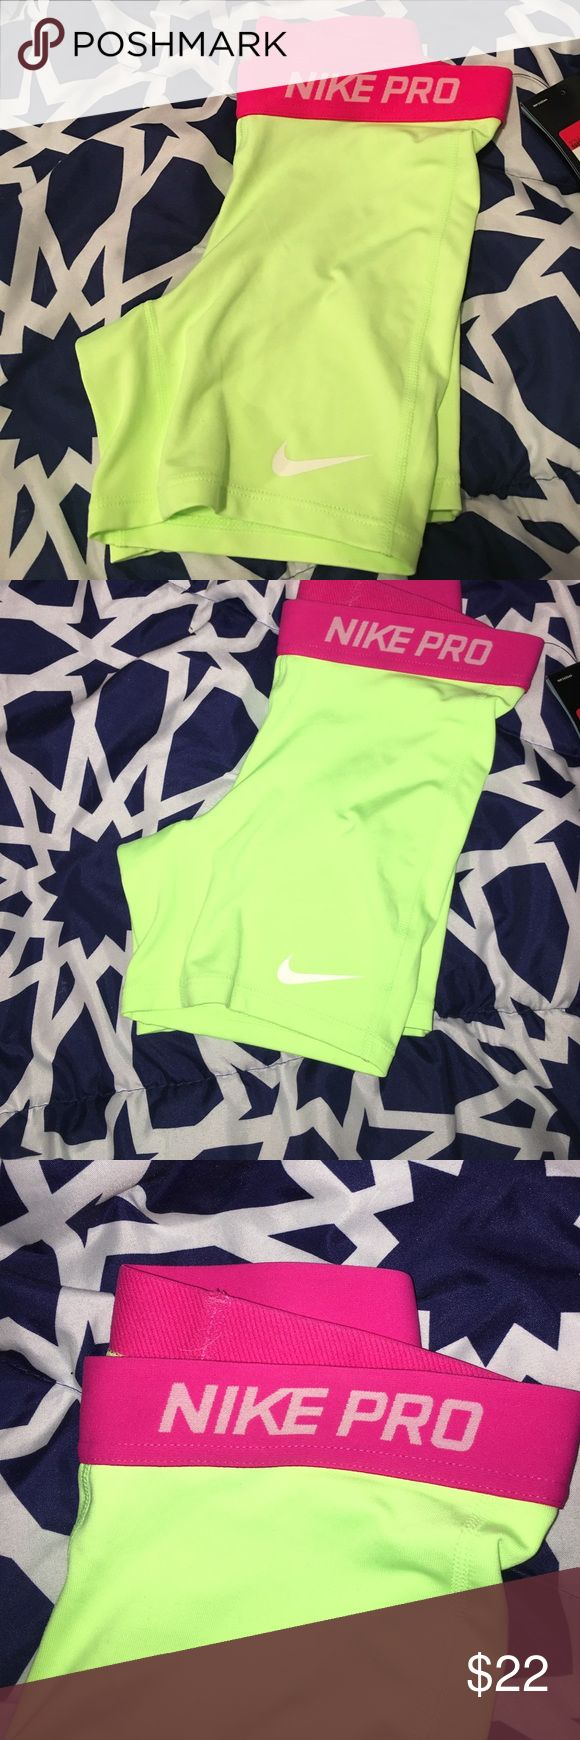 Nike Pro shorts New Nike Pro Dri-fit shorts, green with pink waist, size L in girls but will fit small and xs women. Nike Shorts